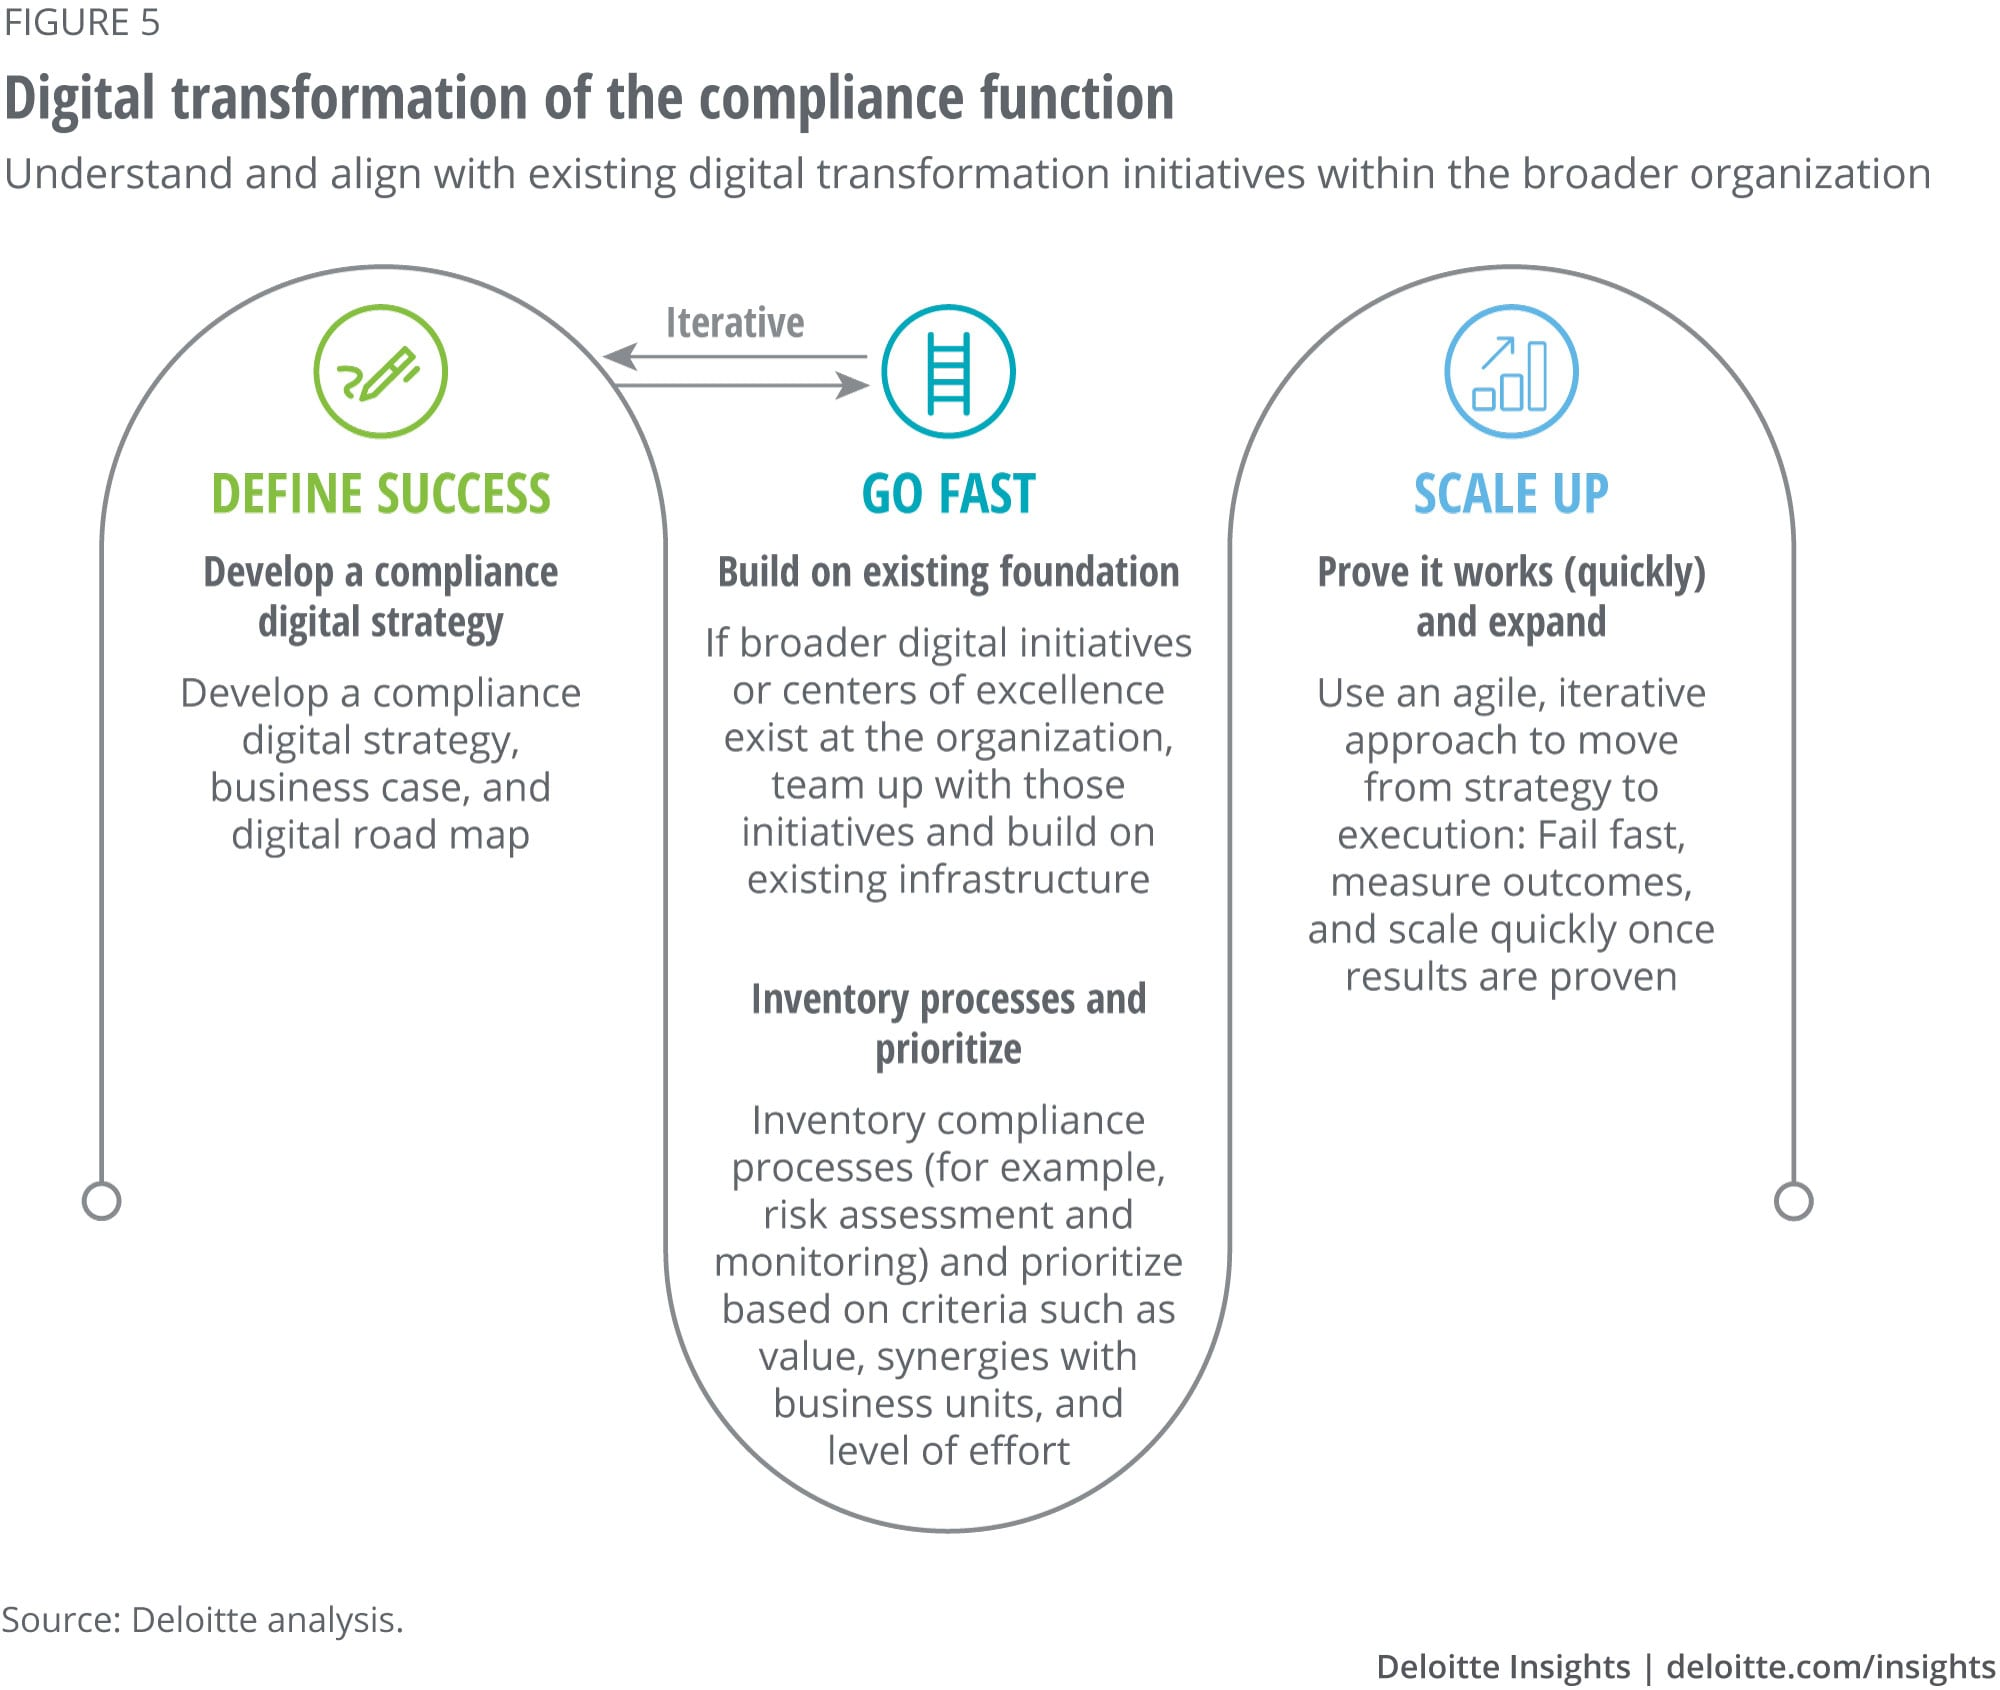 Digital transformation of the compliance function